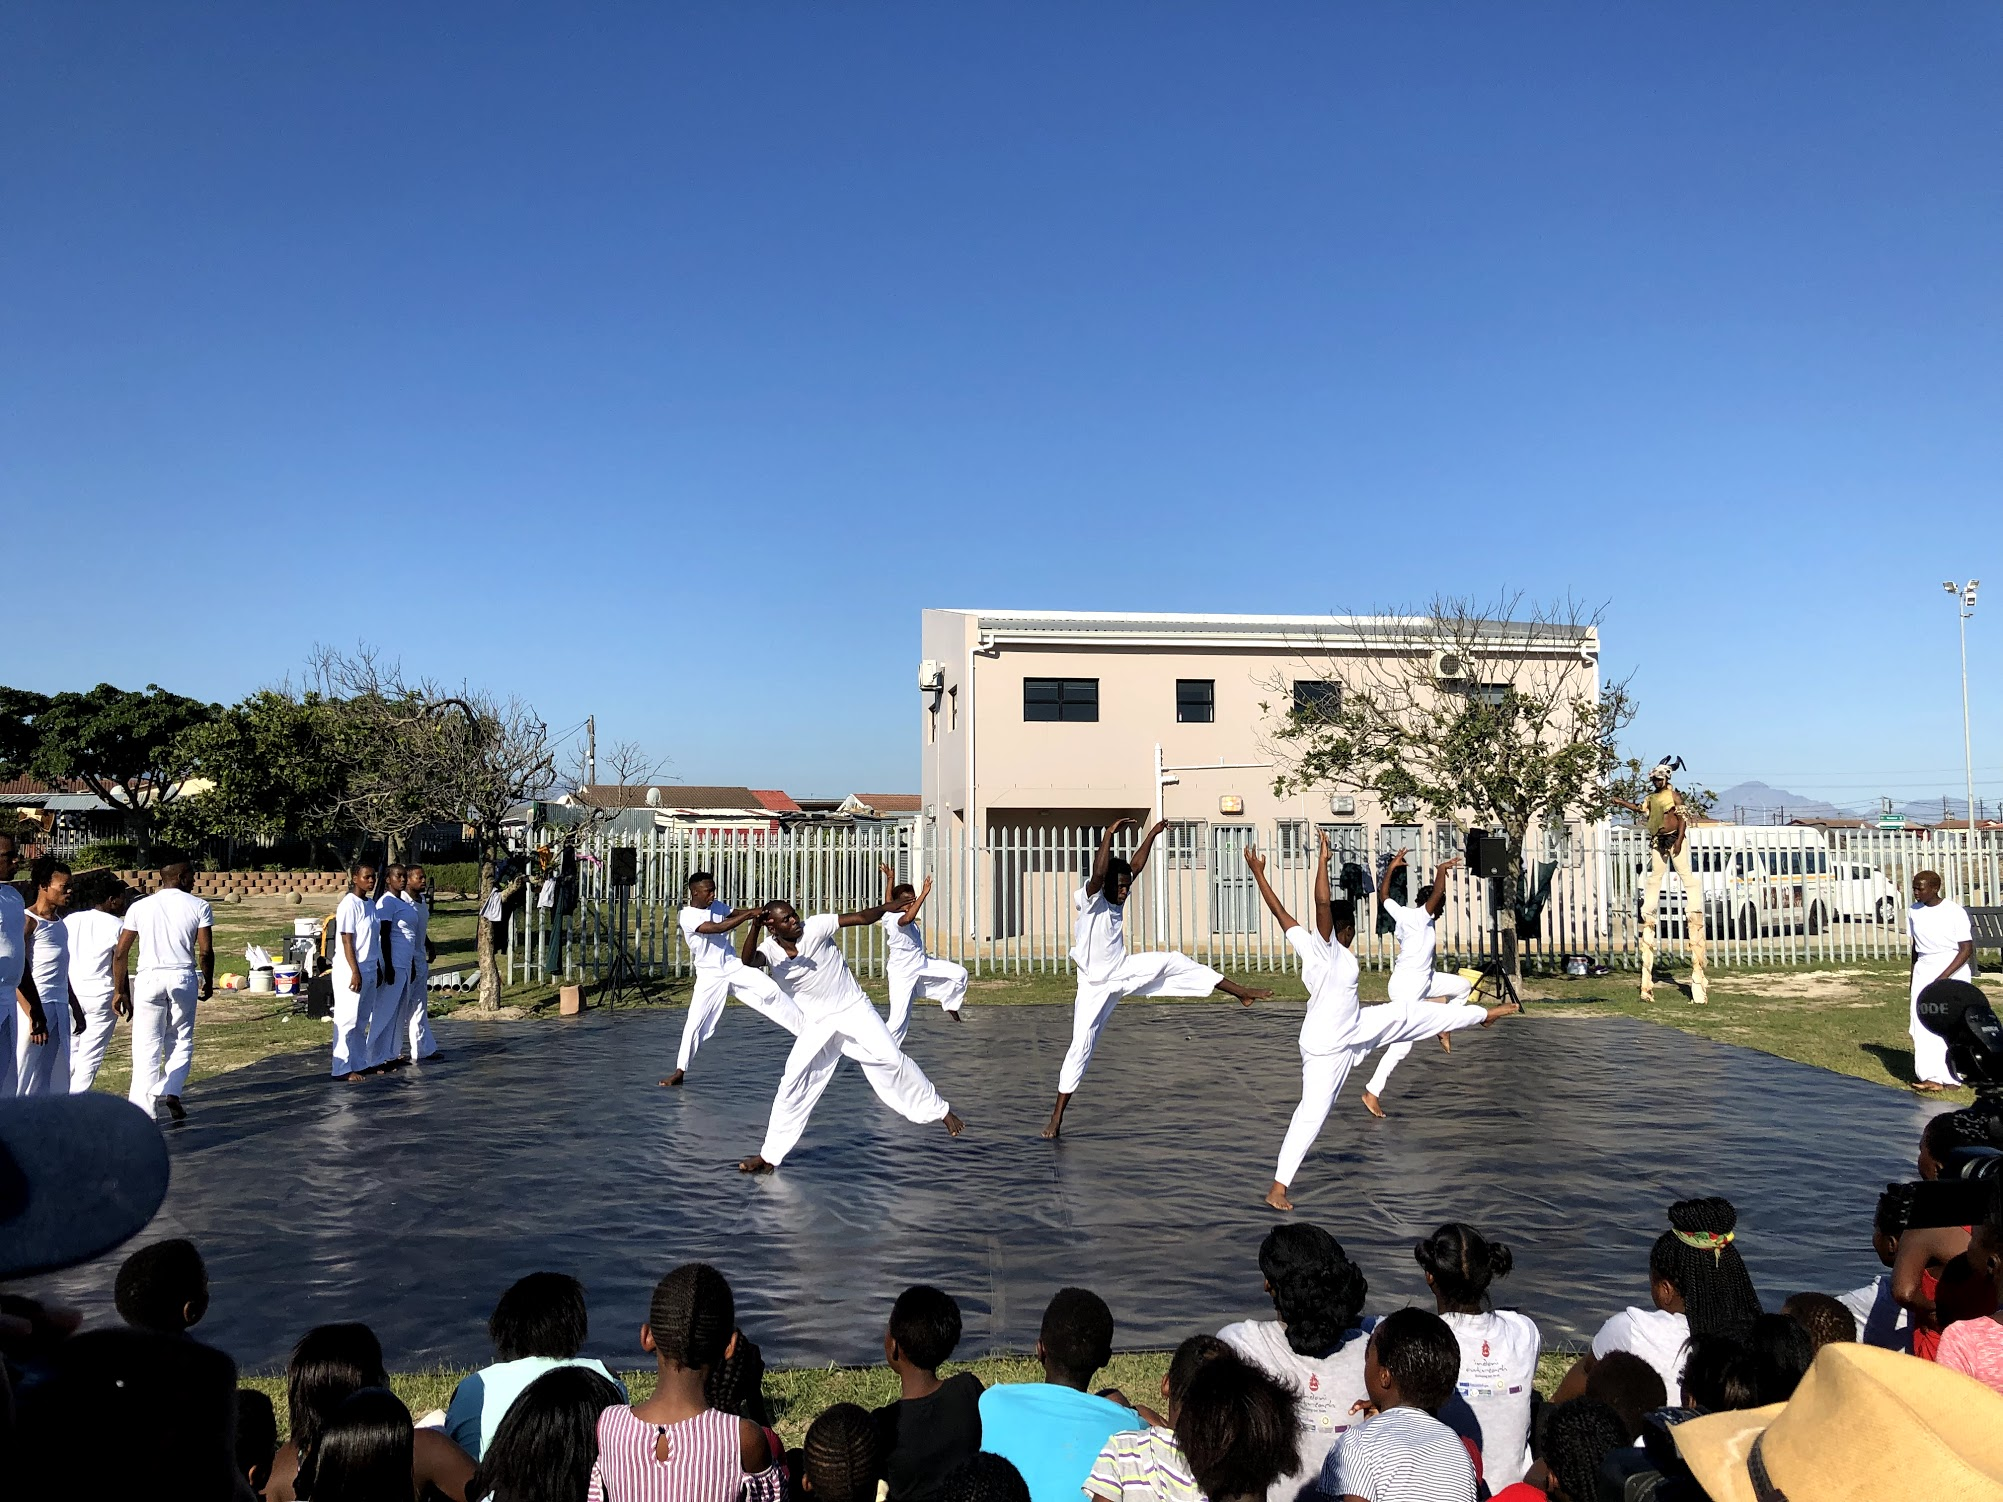 Dancing with Nature is a series of free performances taking place throughout parks in Cape Town. This is an immersive show, the choreography is adapted to each location to merge into the landscape.